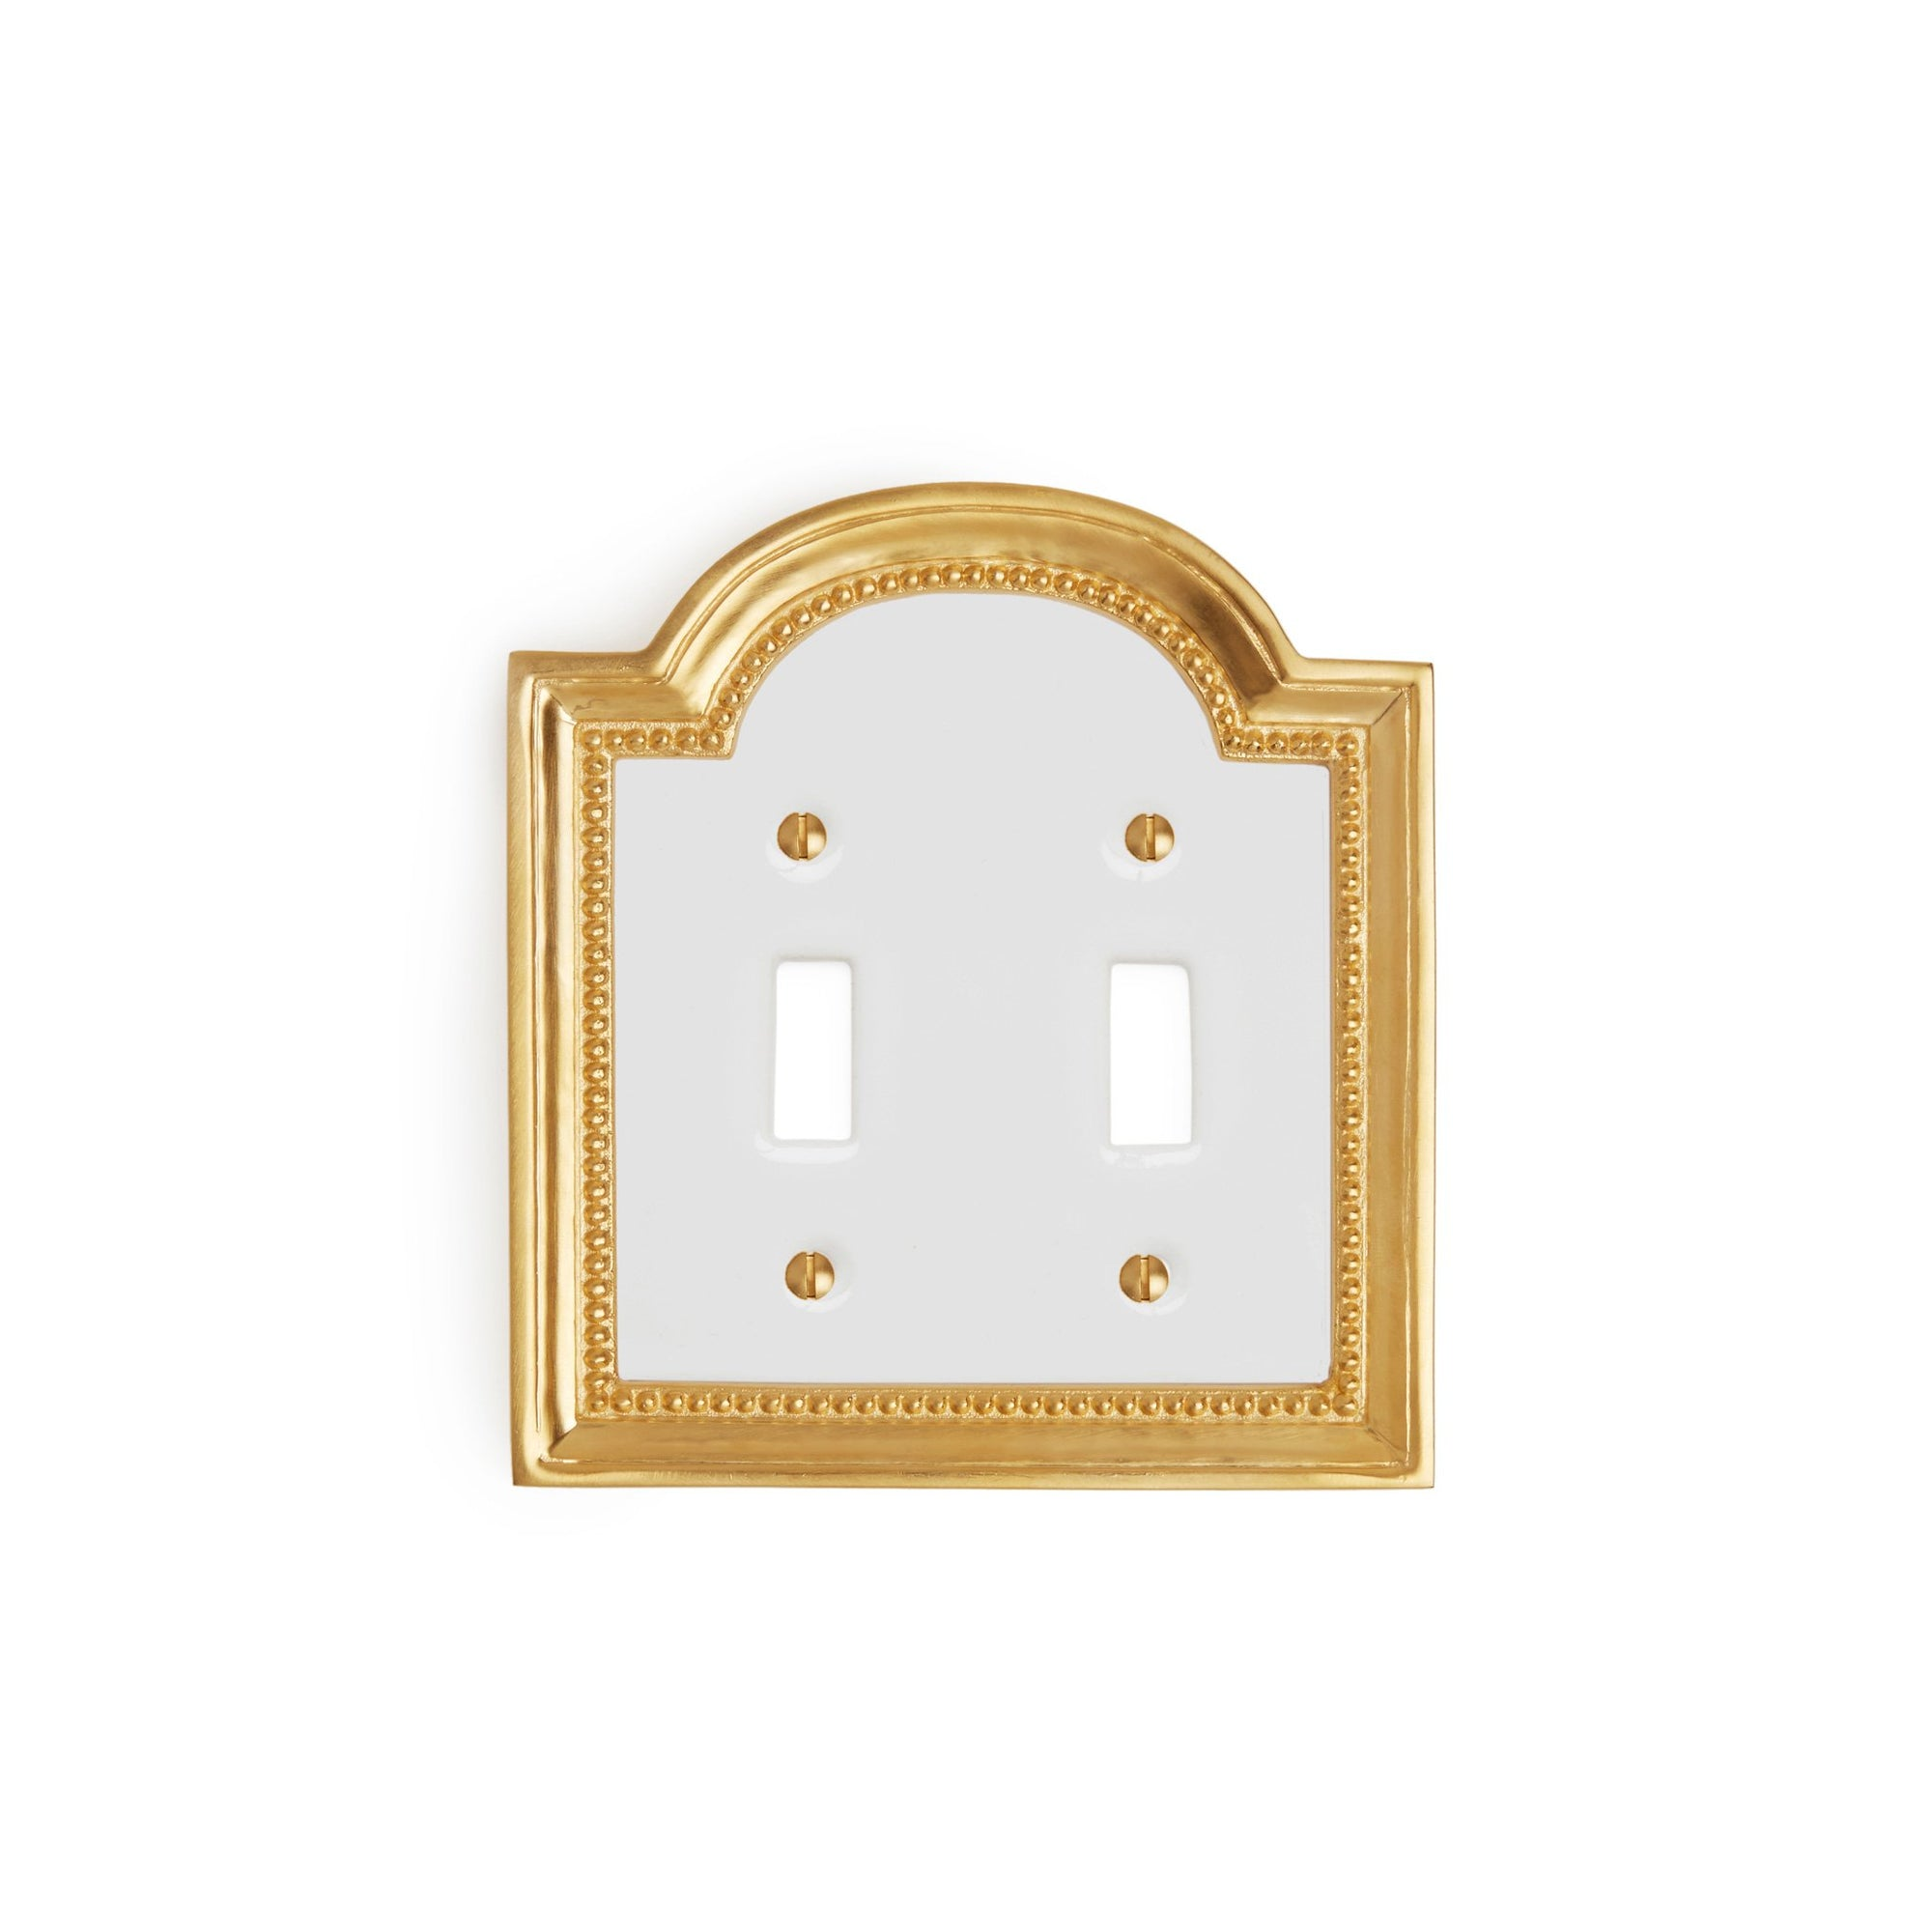 0470D-SWT-WHT-GP Sherle Wagner International Classical Ceramic Double Switch Plate on White in Gold Plate metal finish